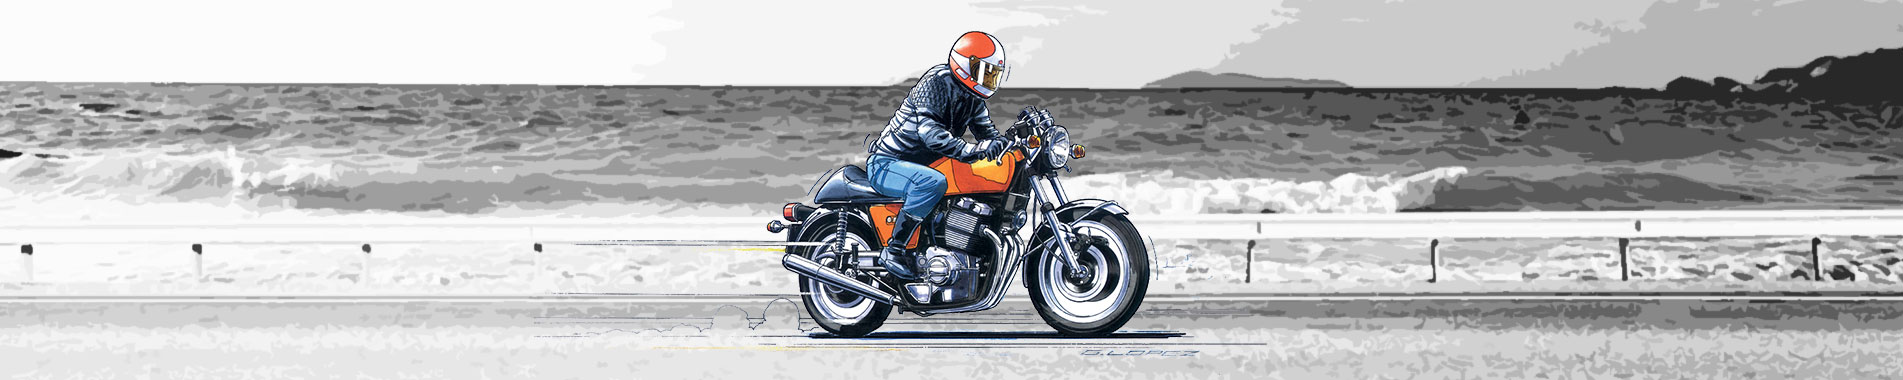 Illustration moto ancienne - Guillaume Lopez